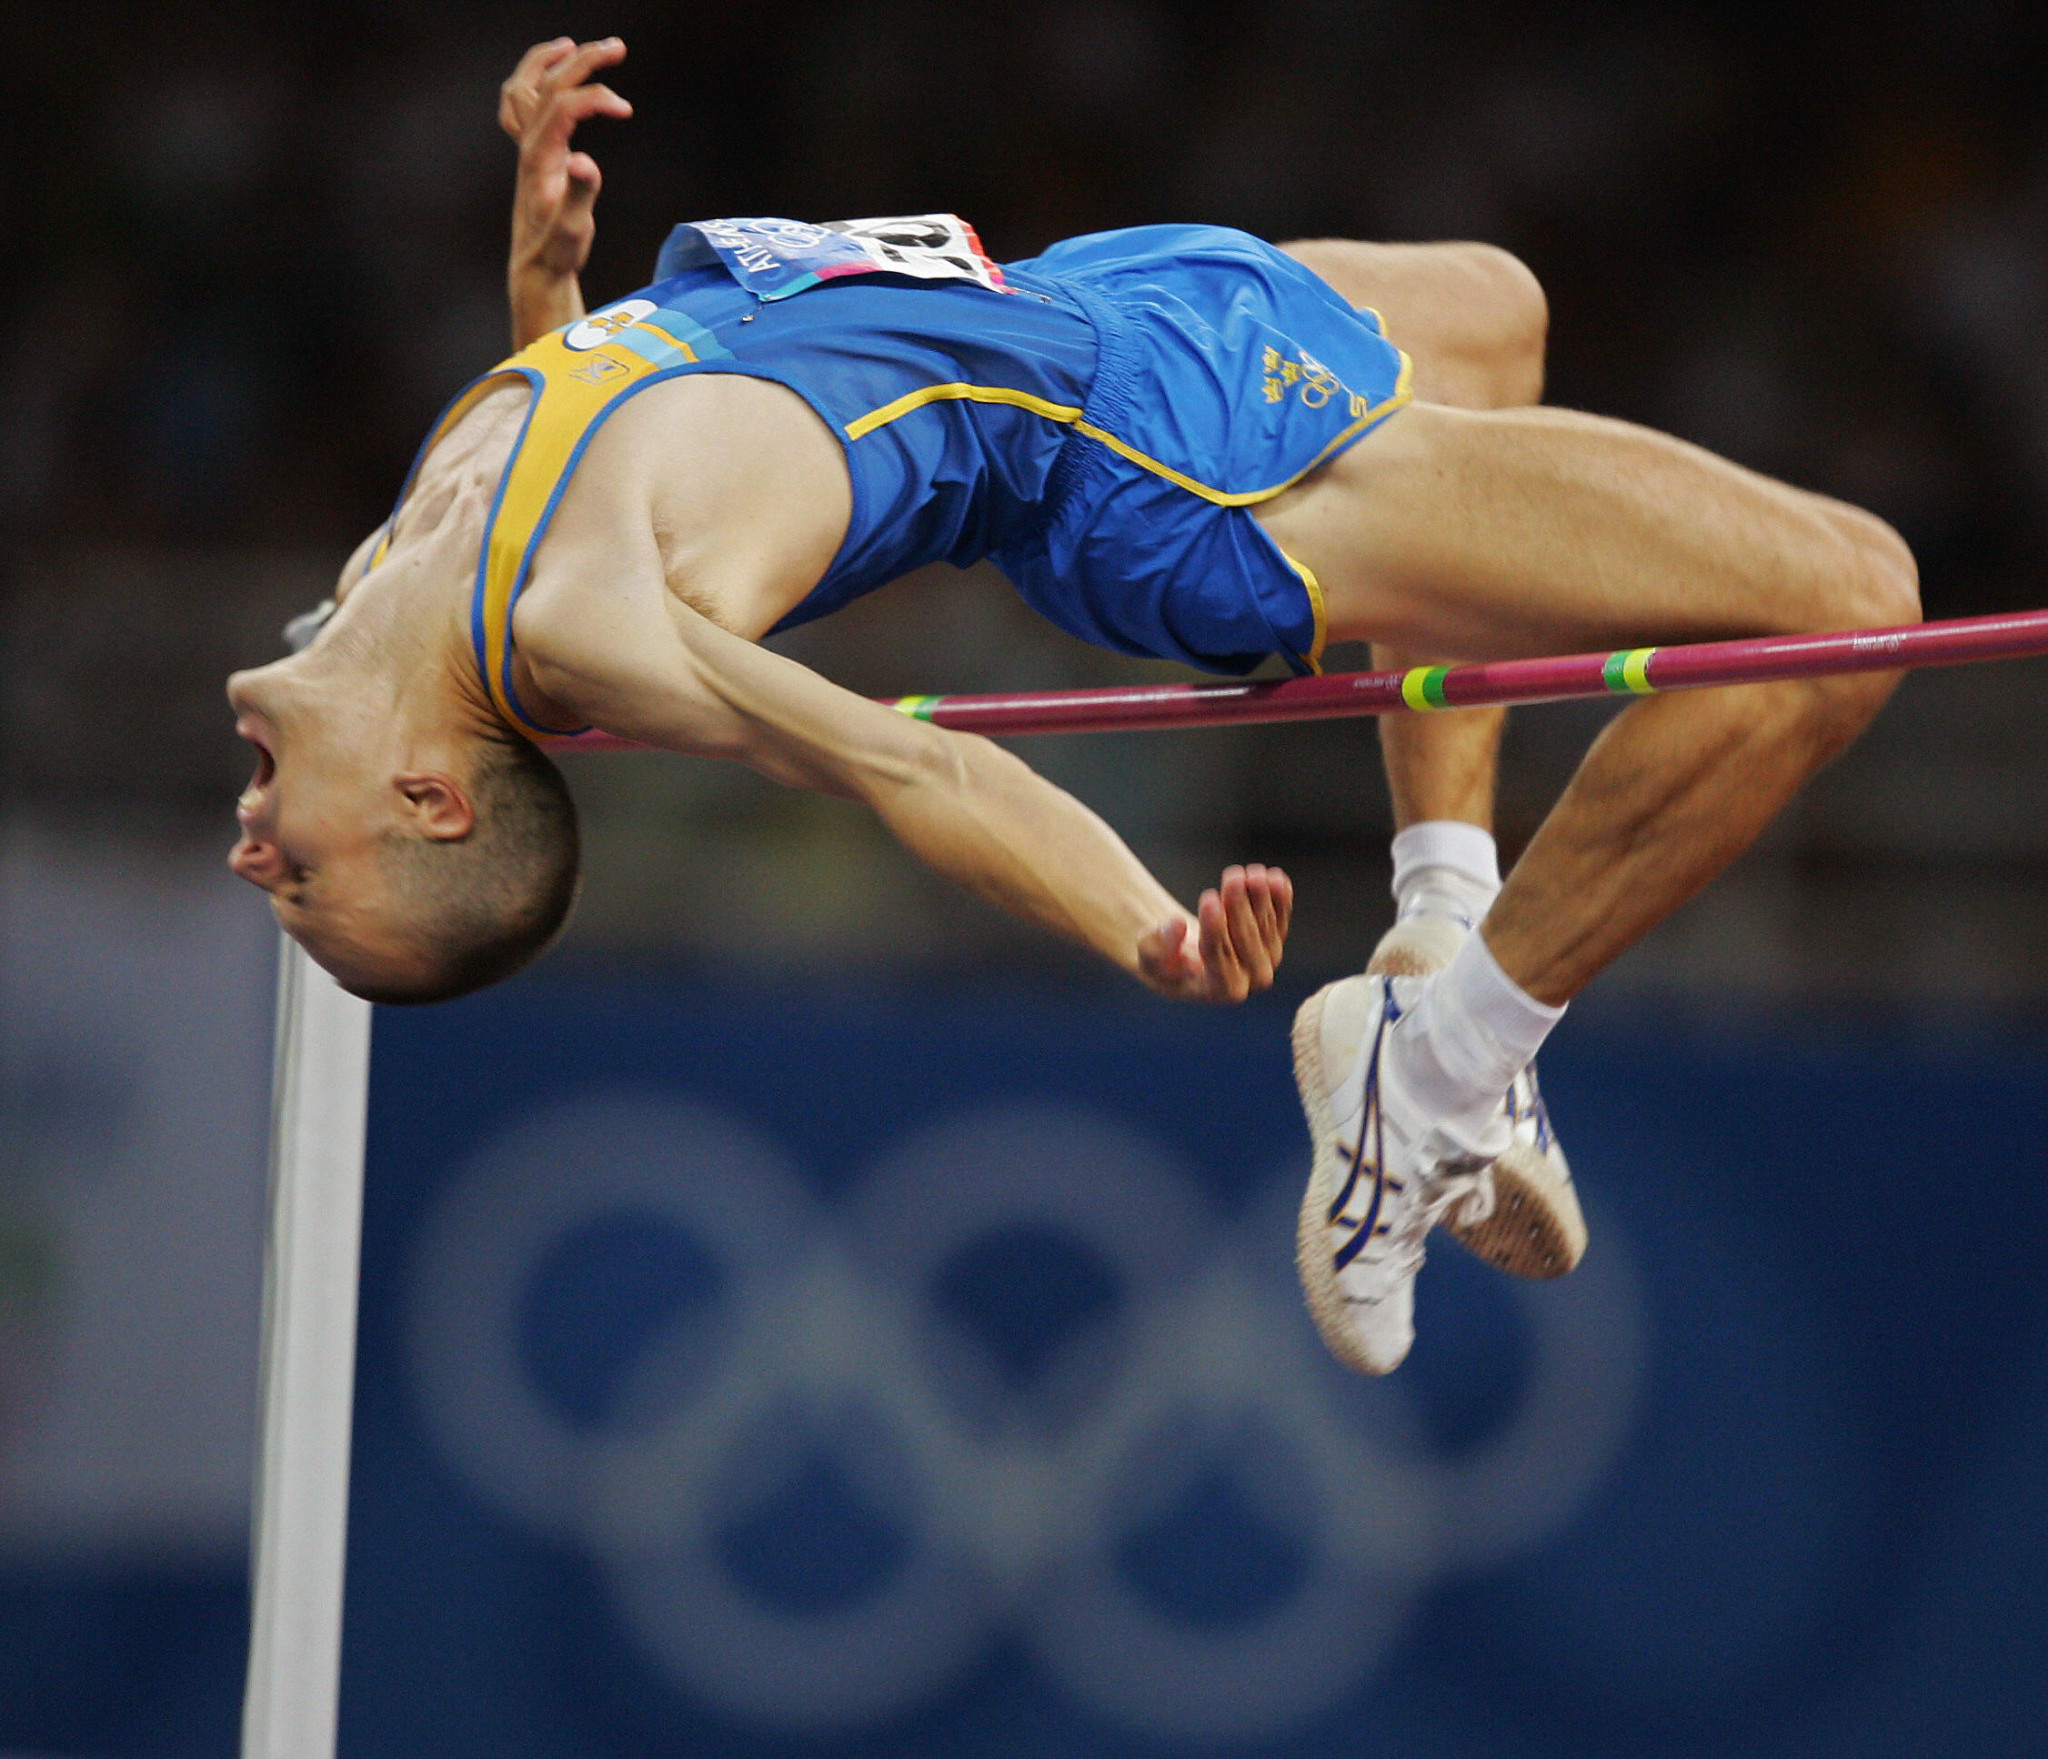 Sweden's Stefan Holm eventually won high jump gold at Athens 2004 ©Getty Images